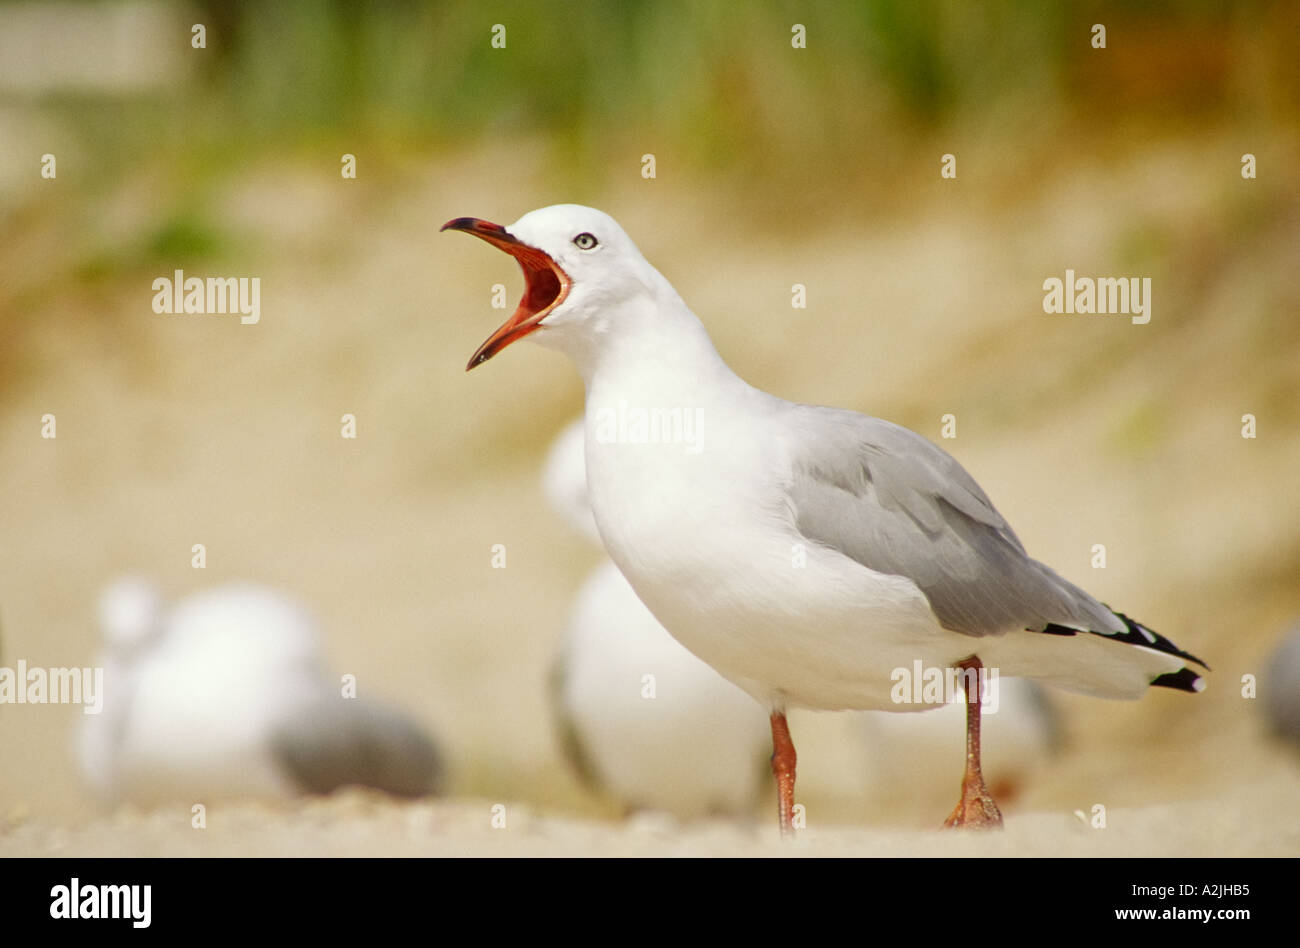 Close up of open mouthed seagull screaming out Larus novaehollandiae scopulinus - Stock Image